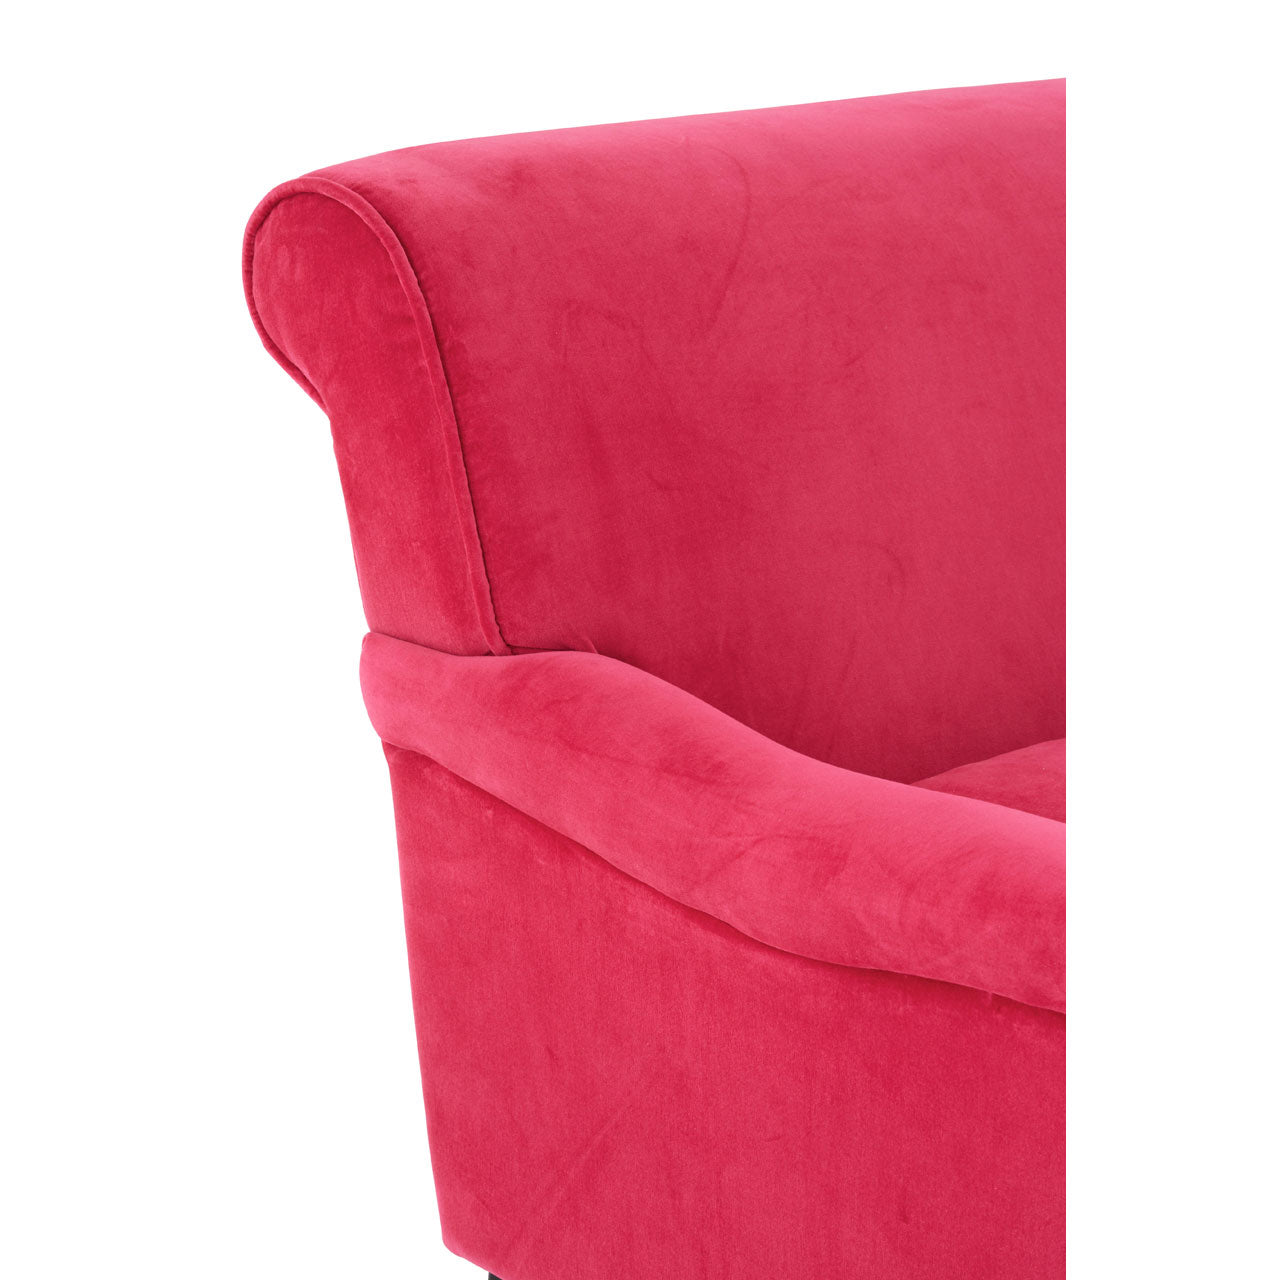 Large Pink Plush Velvet Chair